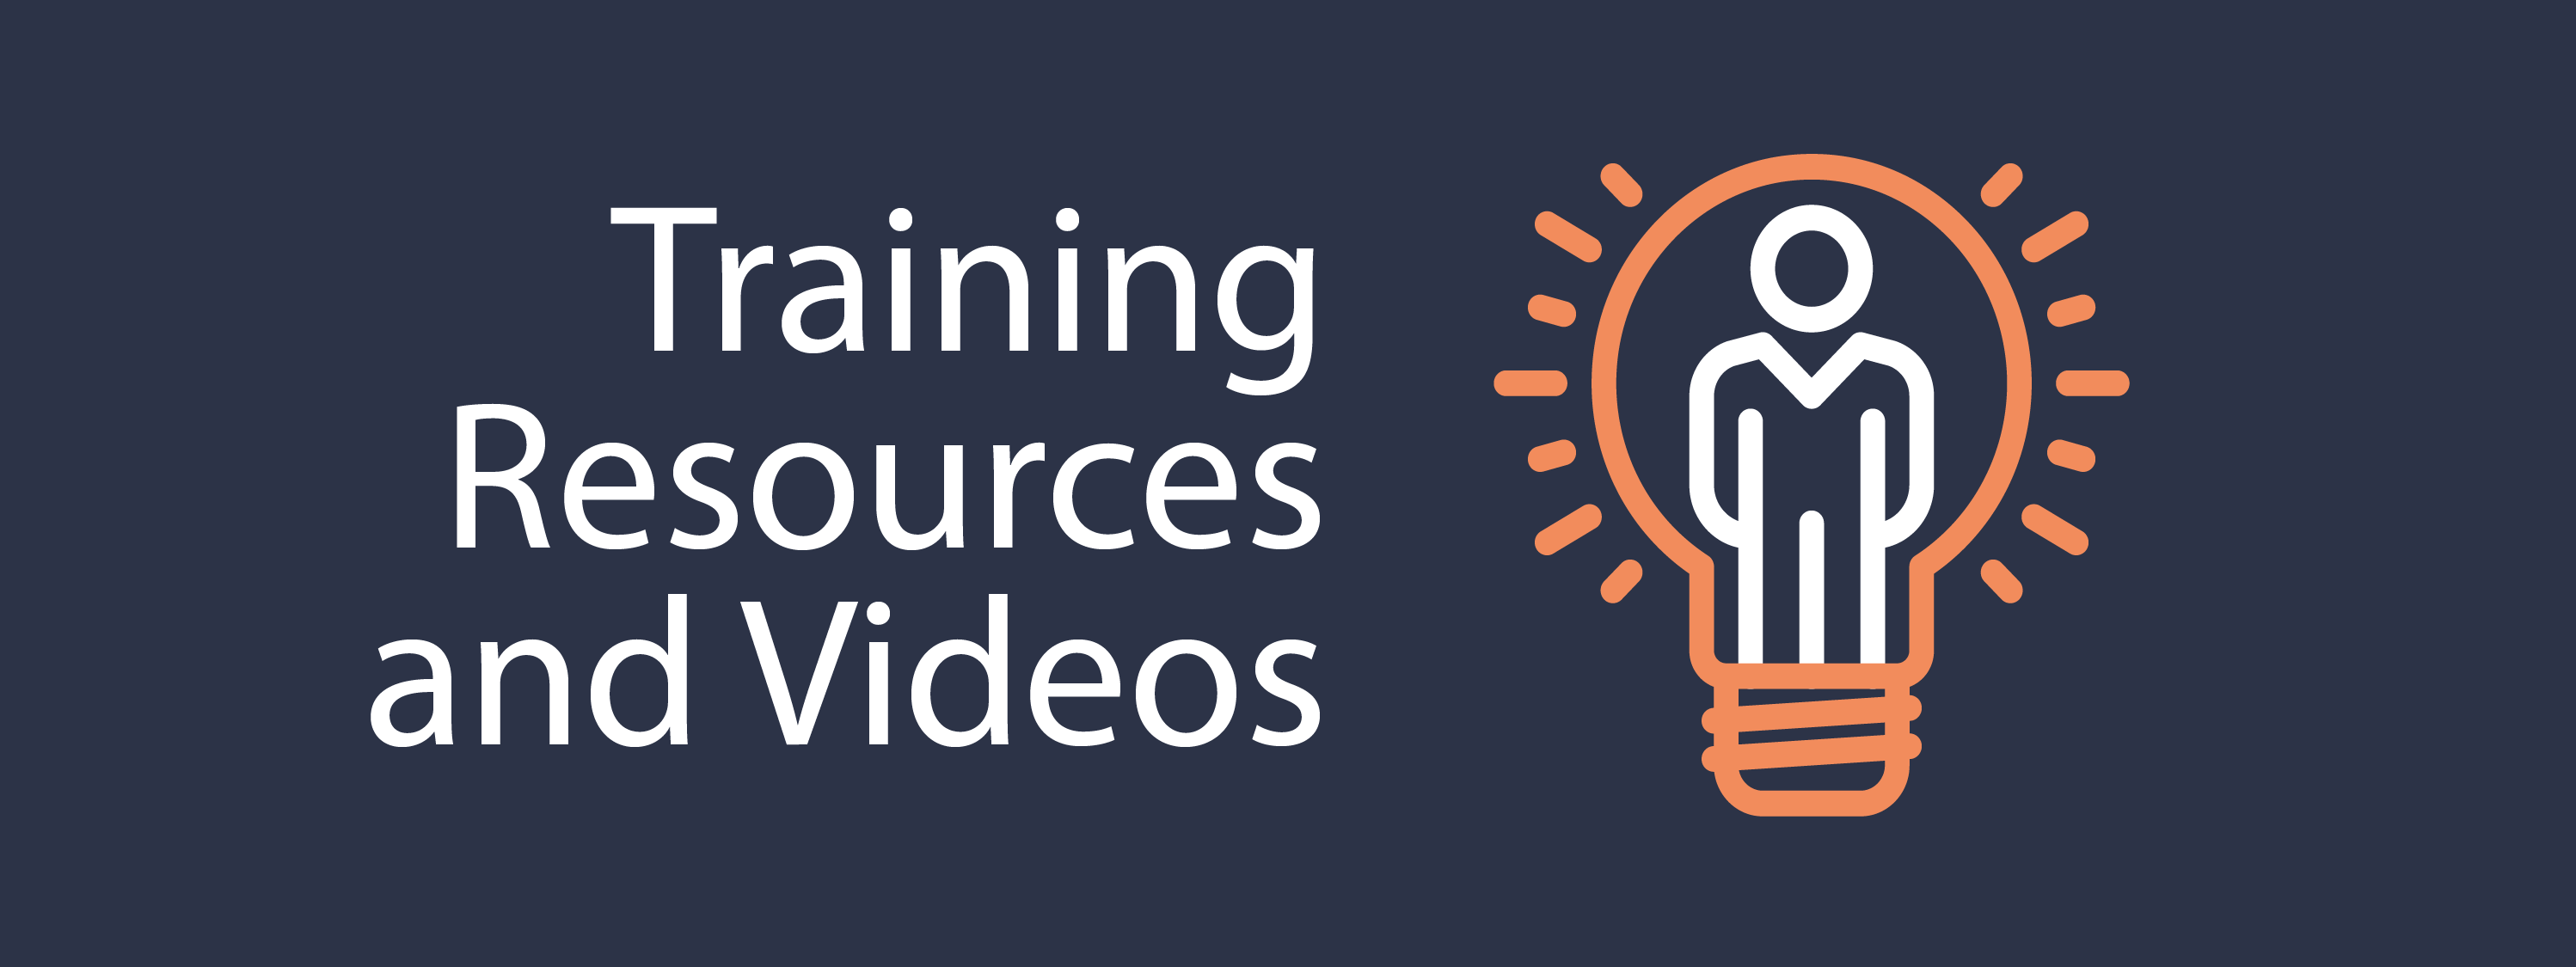 Training Resources and Videos